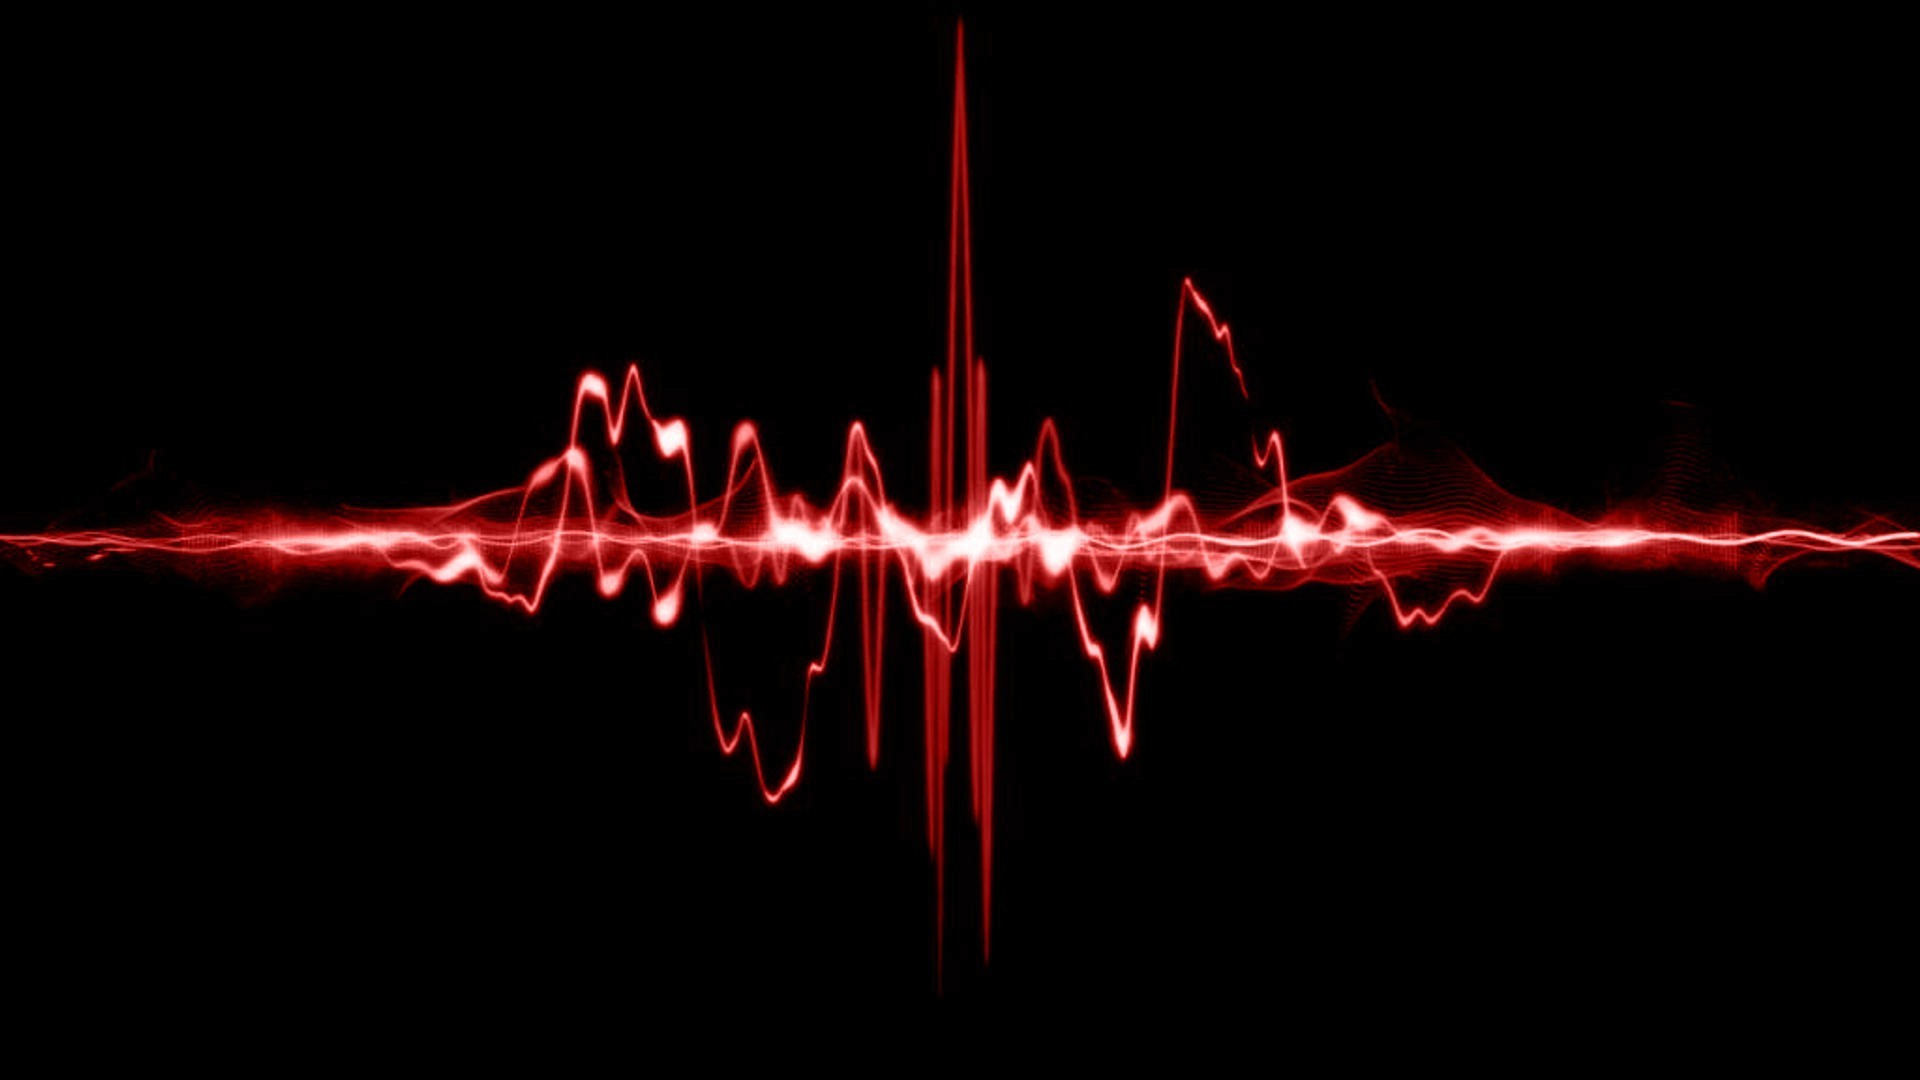 sound waves wallpaper